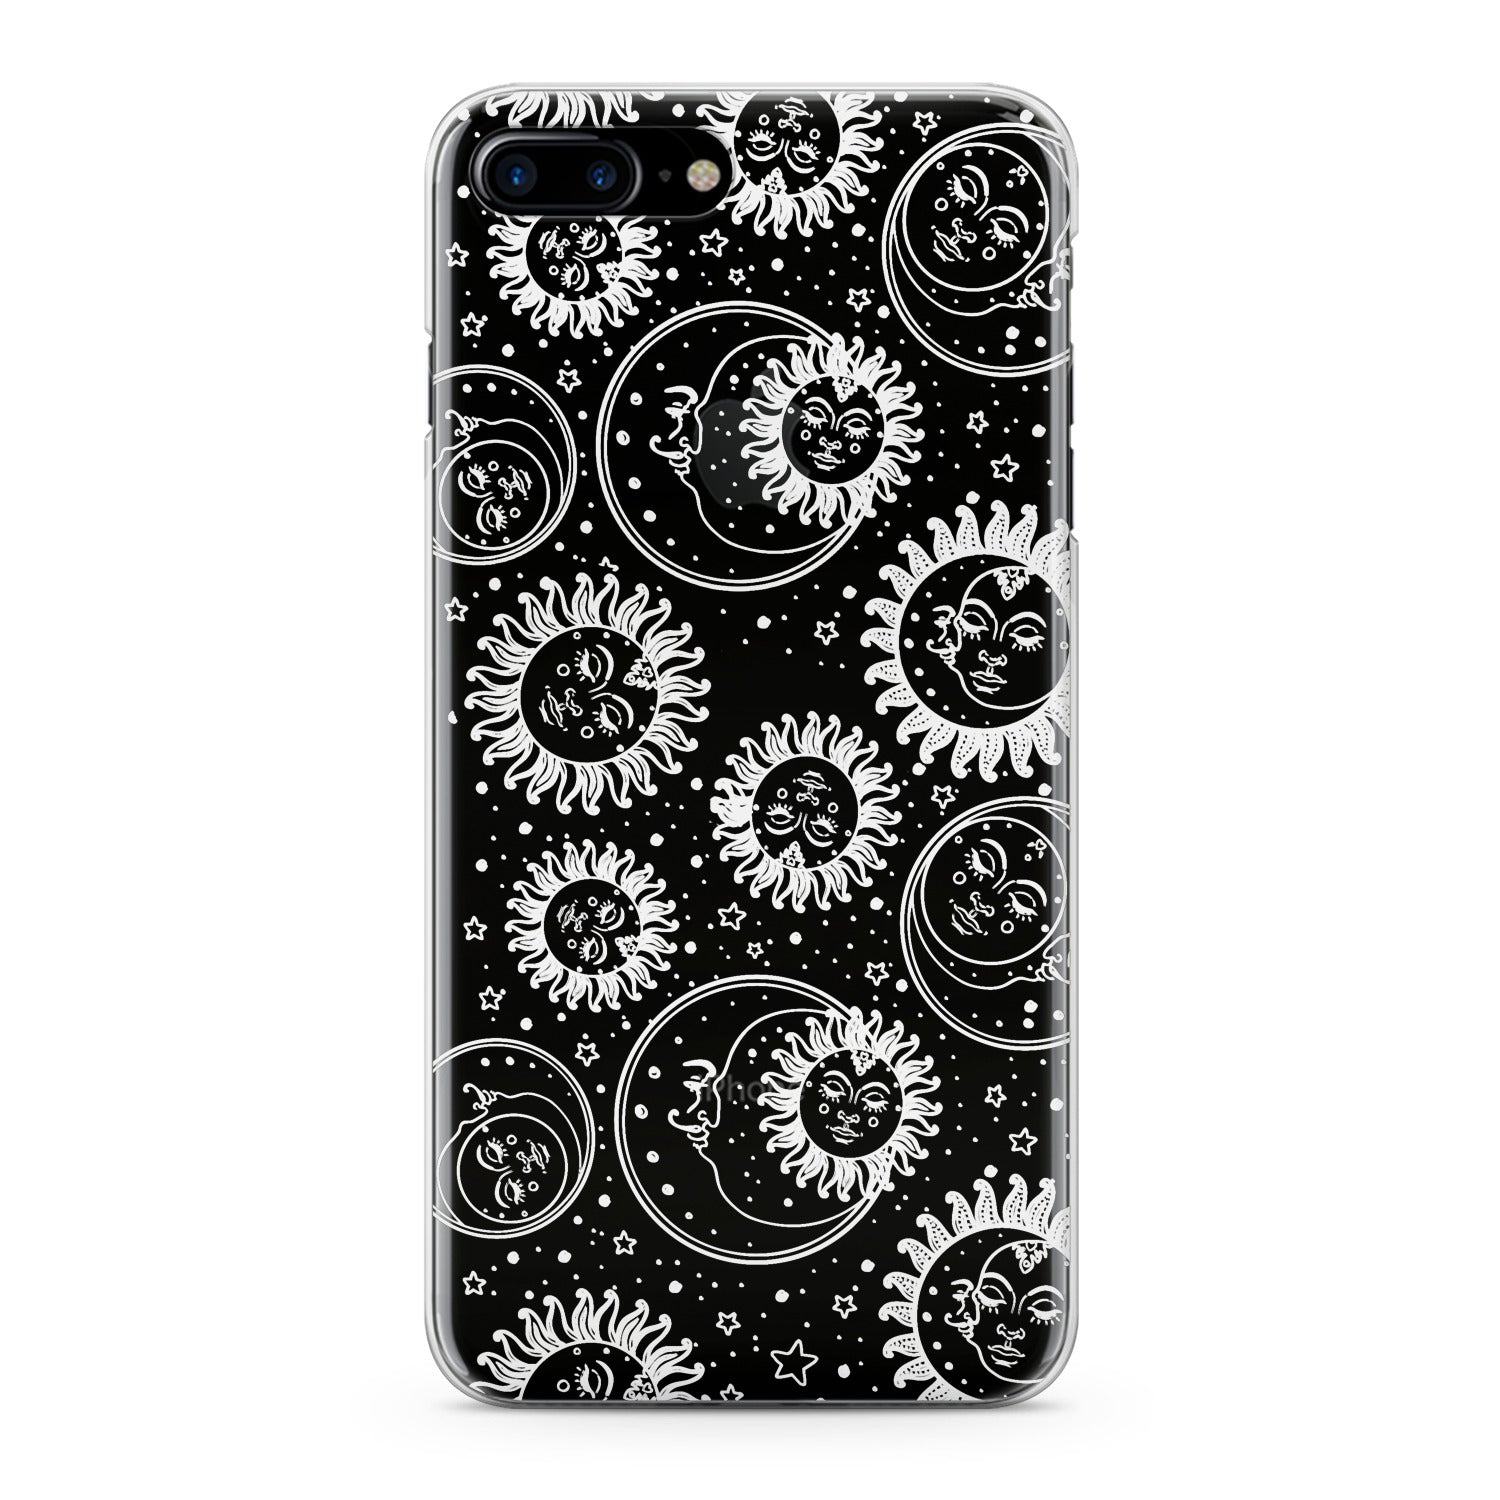 Lex Altern White Celestial Pattern Phone Case for your iPhone & Android phone.